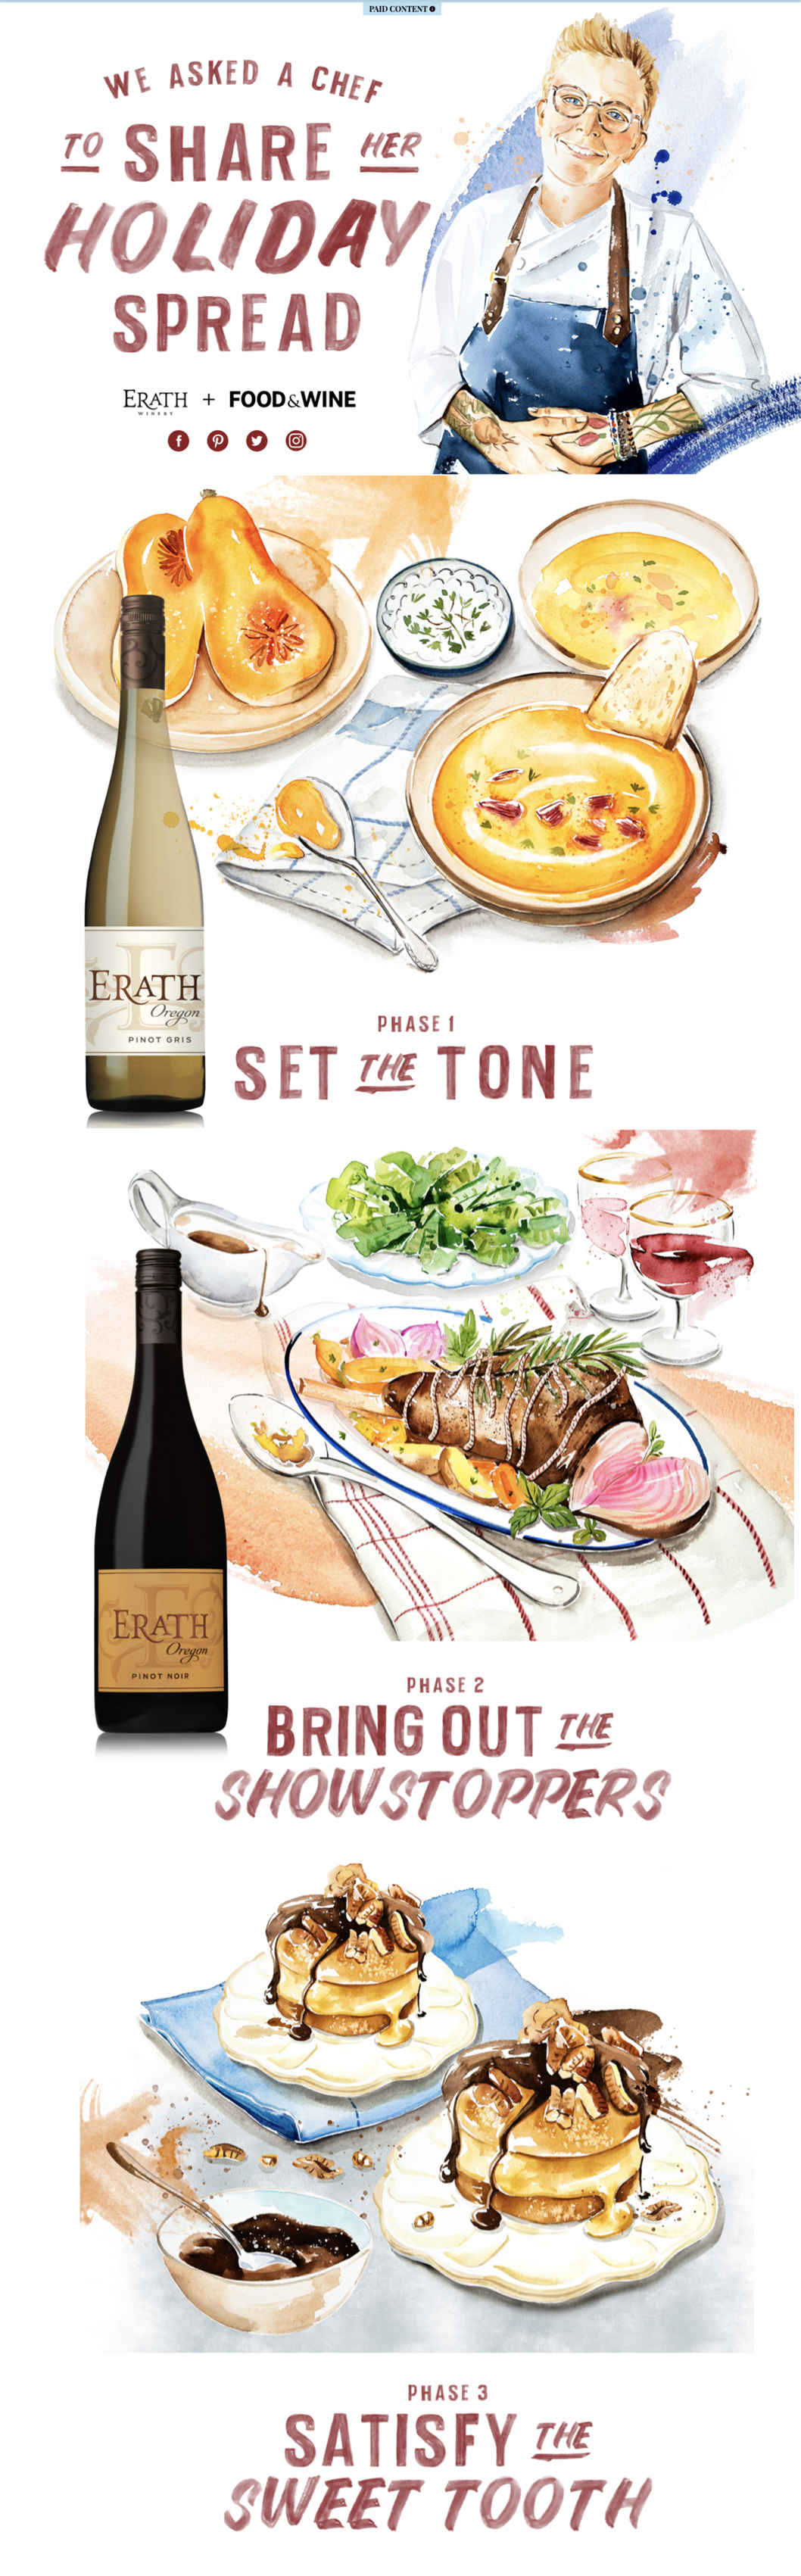 Erath winery editorial